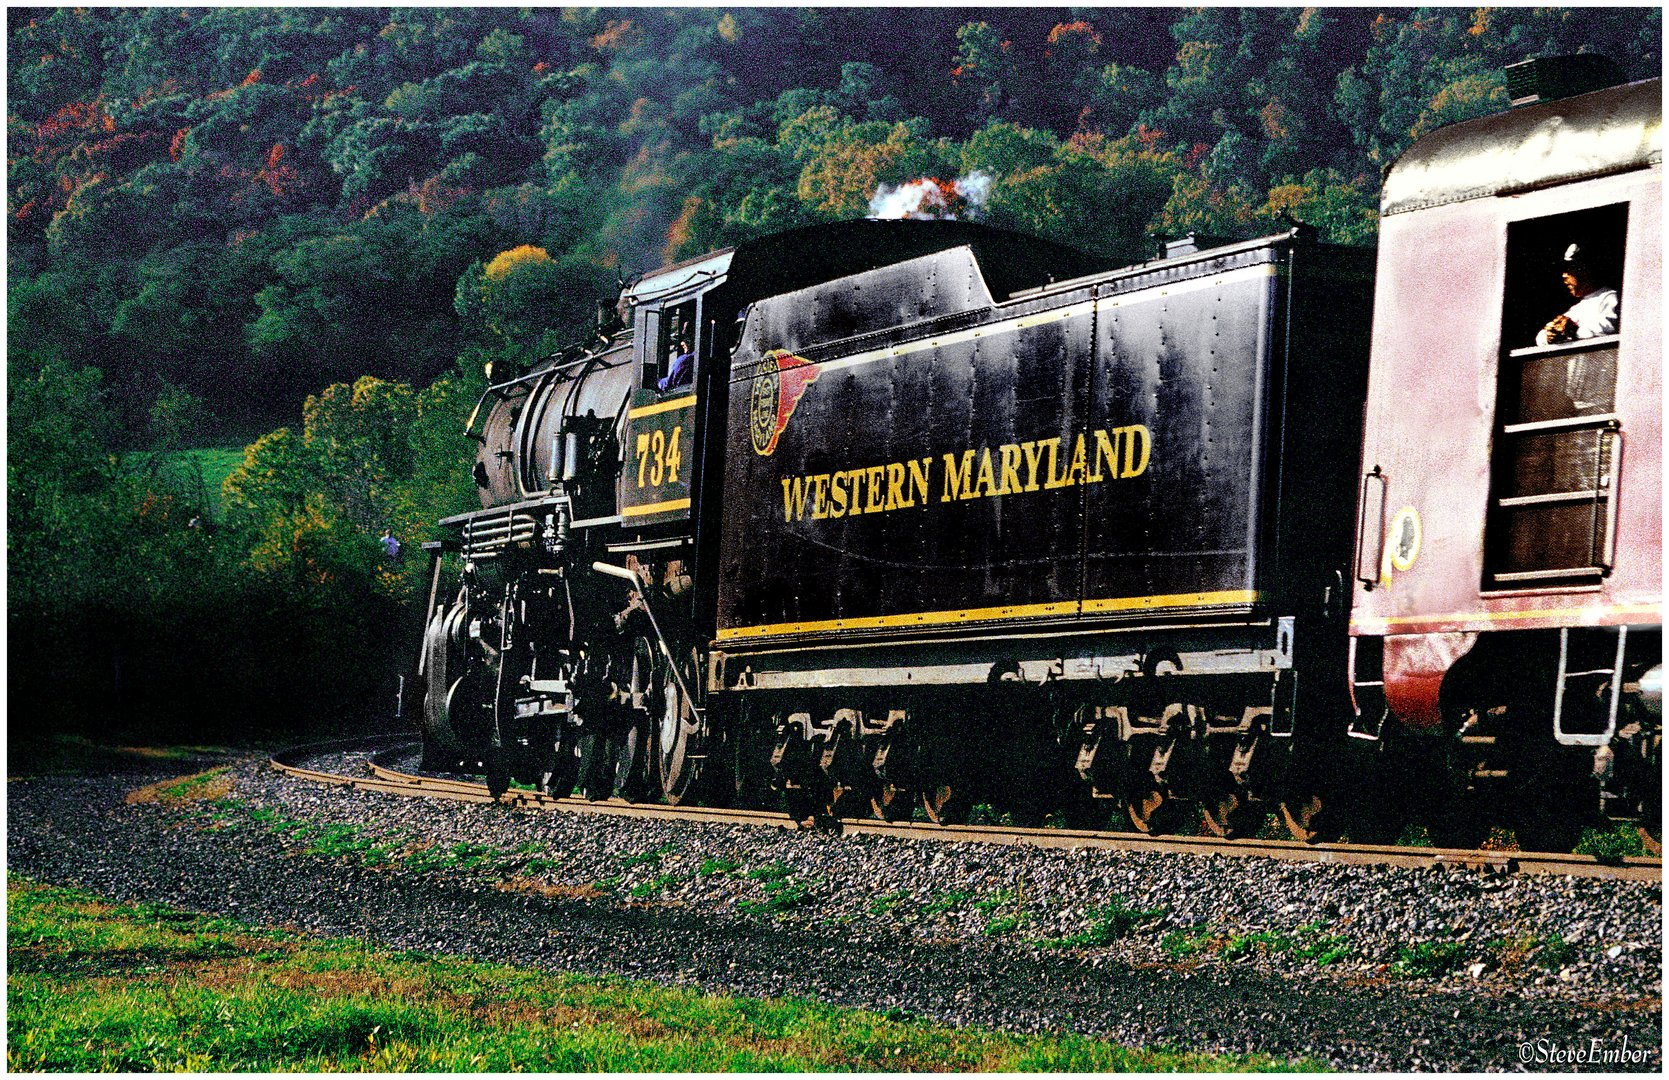 Western Maryland No. 734 on Helmstetter's Curve